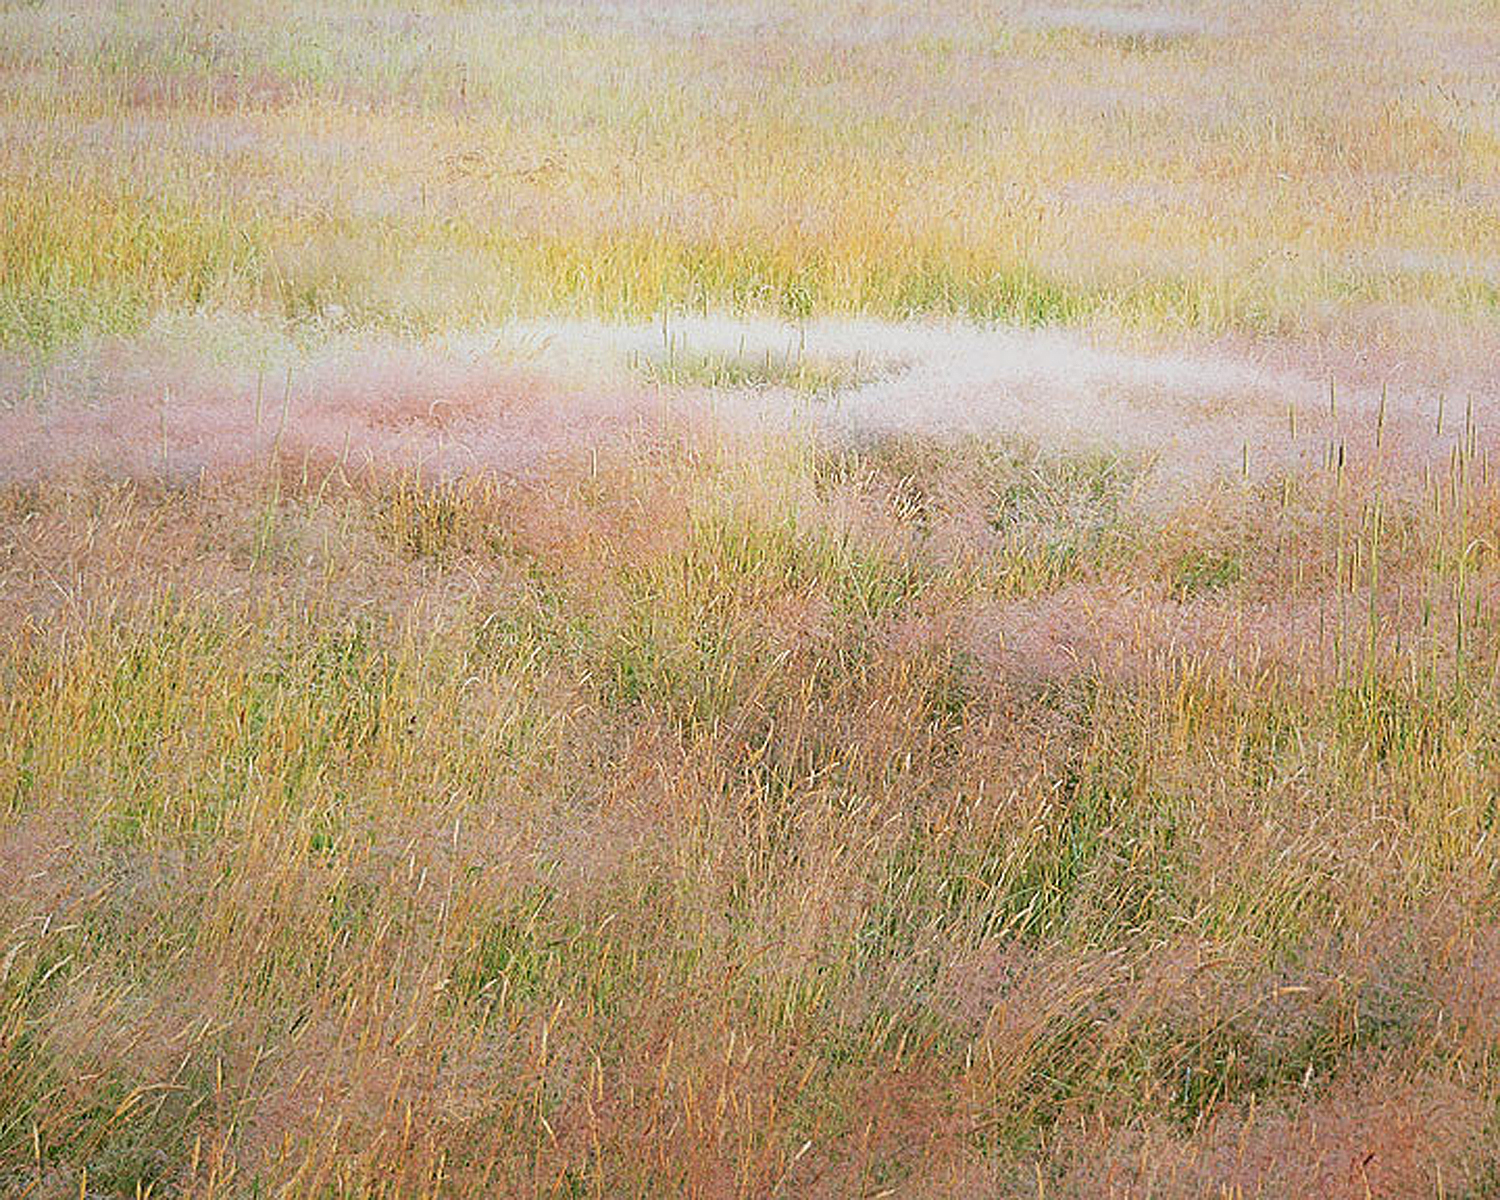 """Christopher Burkett   """"Clouds of Blooming Grasses,"""" Connecticut    Cibachrome Photograph    Available in 20"""" x 24"""", 30"""" x 40"""", and 40"""" x 50"""""""